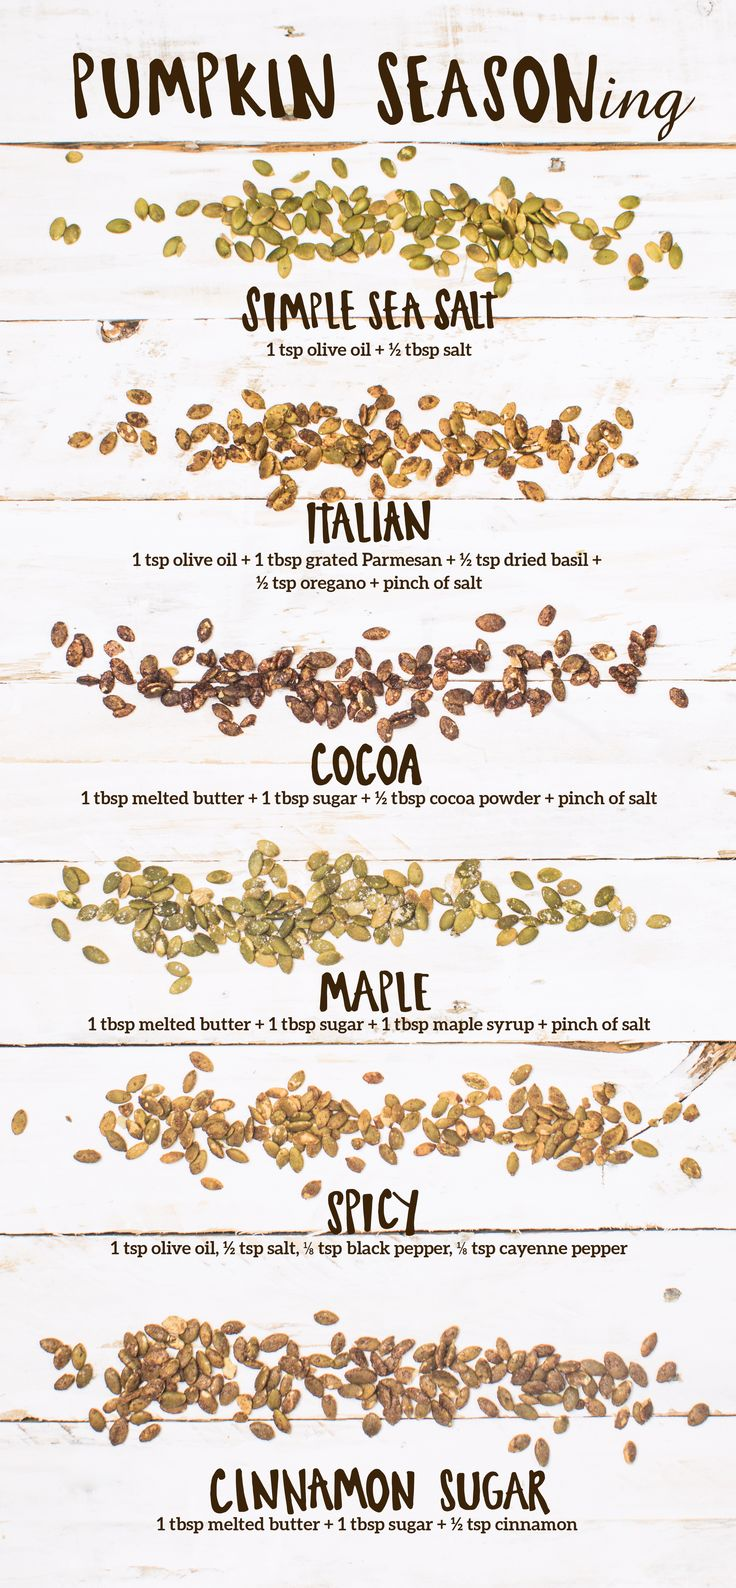 October is the season for seasoning—pumpkin seeds, that is! You can even use them straight from the jack-o-lantern. Once you've cleaned off the pumpkin seeds and patted them dry, set your oven to 300°, season your seeds with one of these delicious combos, and spread on a cookie sheet lined with parchment paper. Bake for 20-30 minutes and enjoy for a crispy, crunchy treat!